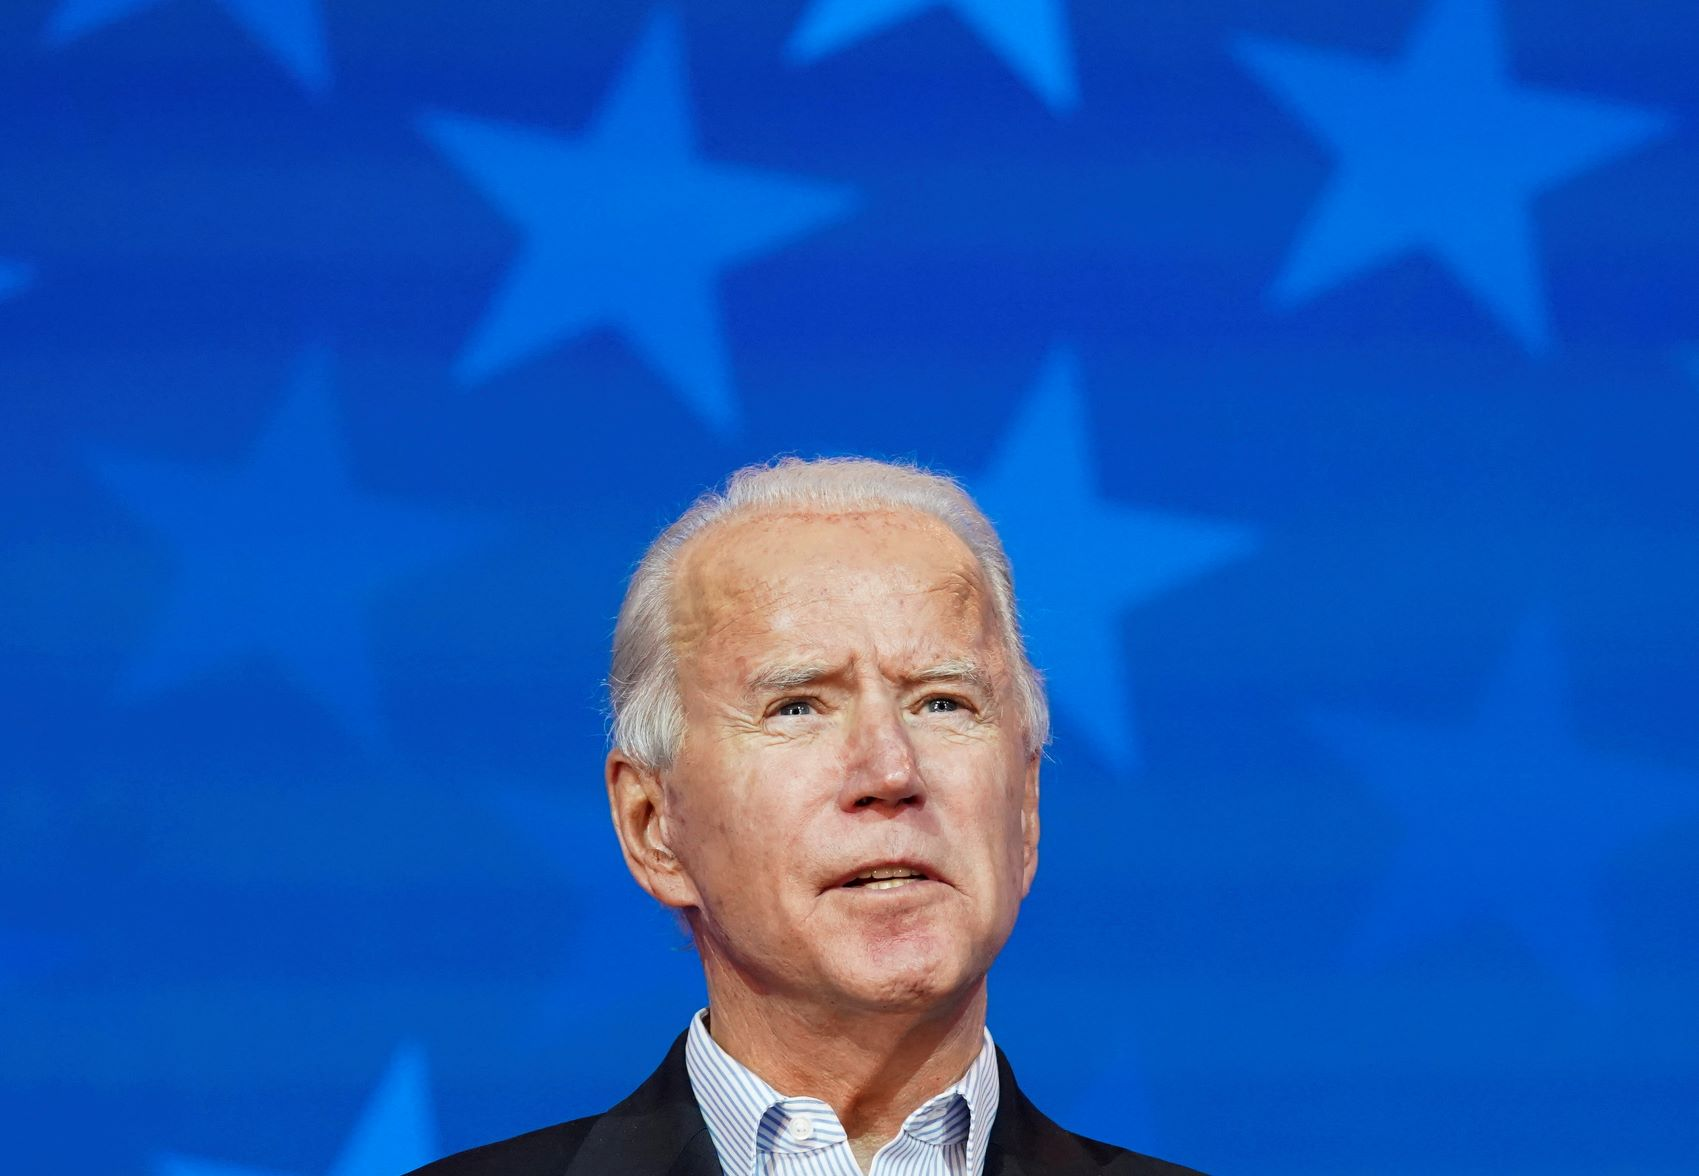 Democratic U.S. presidential nominee Joe Biden makes a statement on the 2020 U.S. presidential election results during a brief appearance before reporters in Wilmington, Delaware on November 5, 2020.